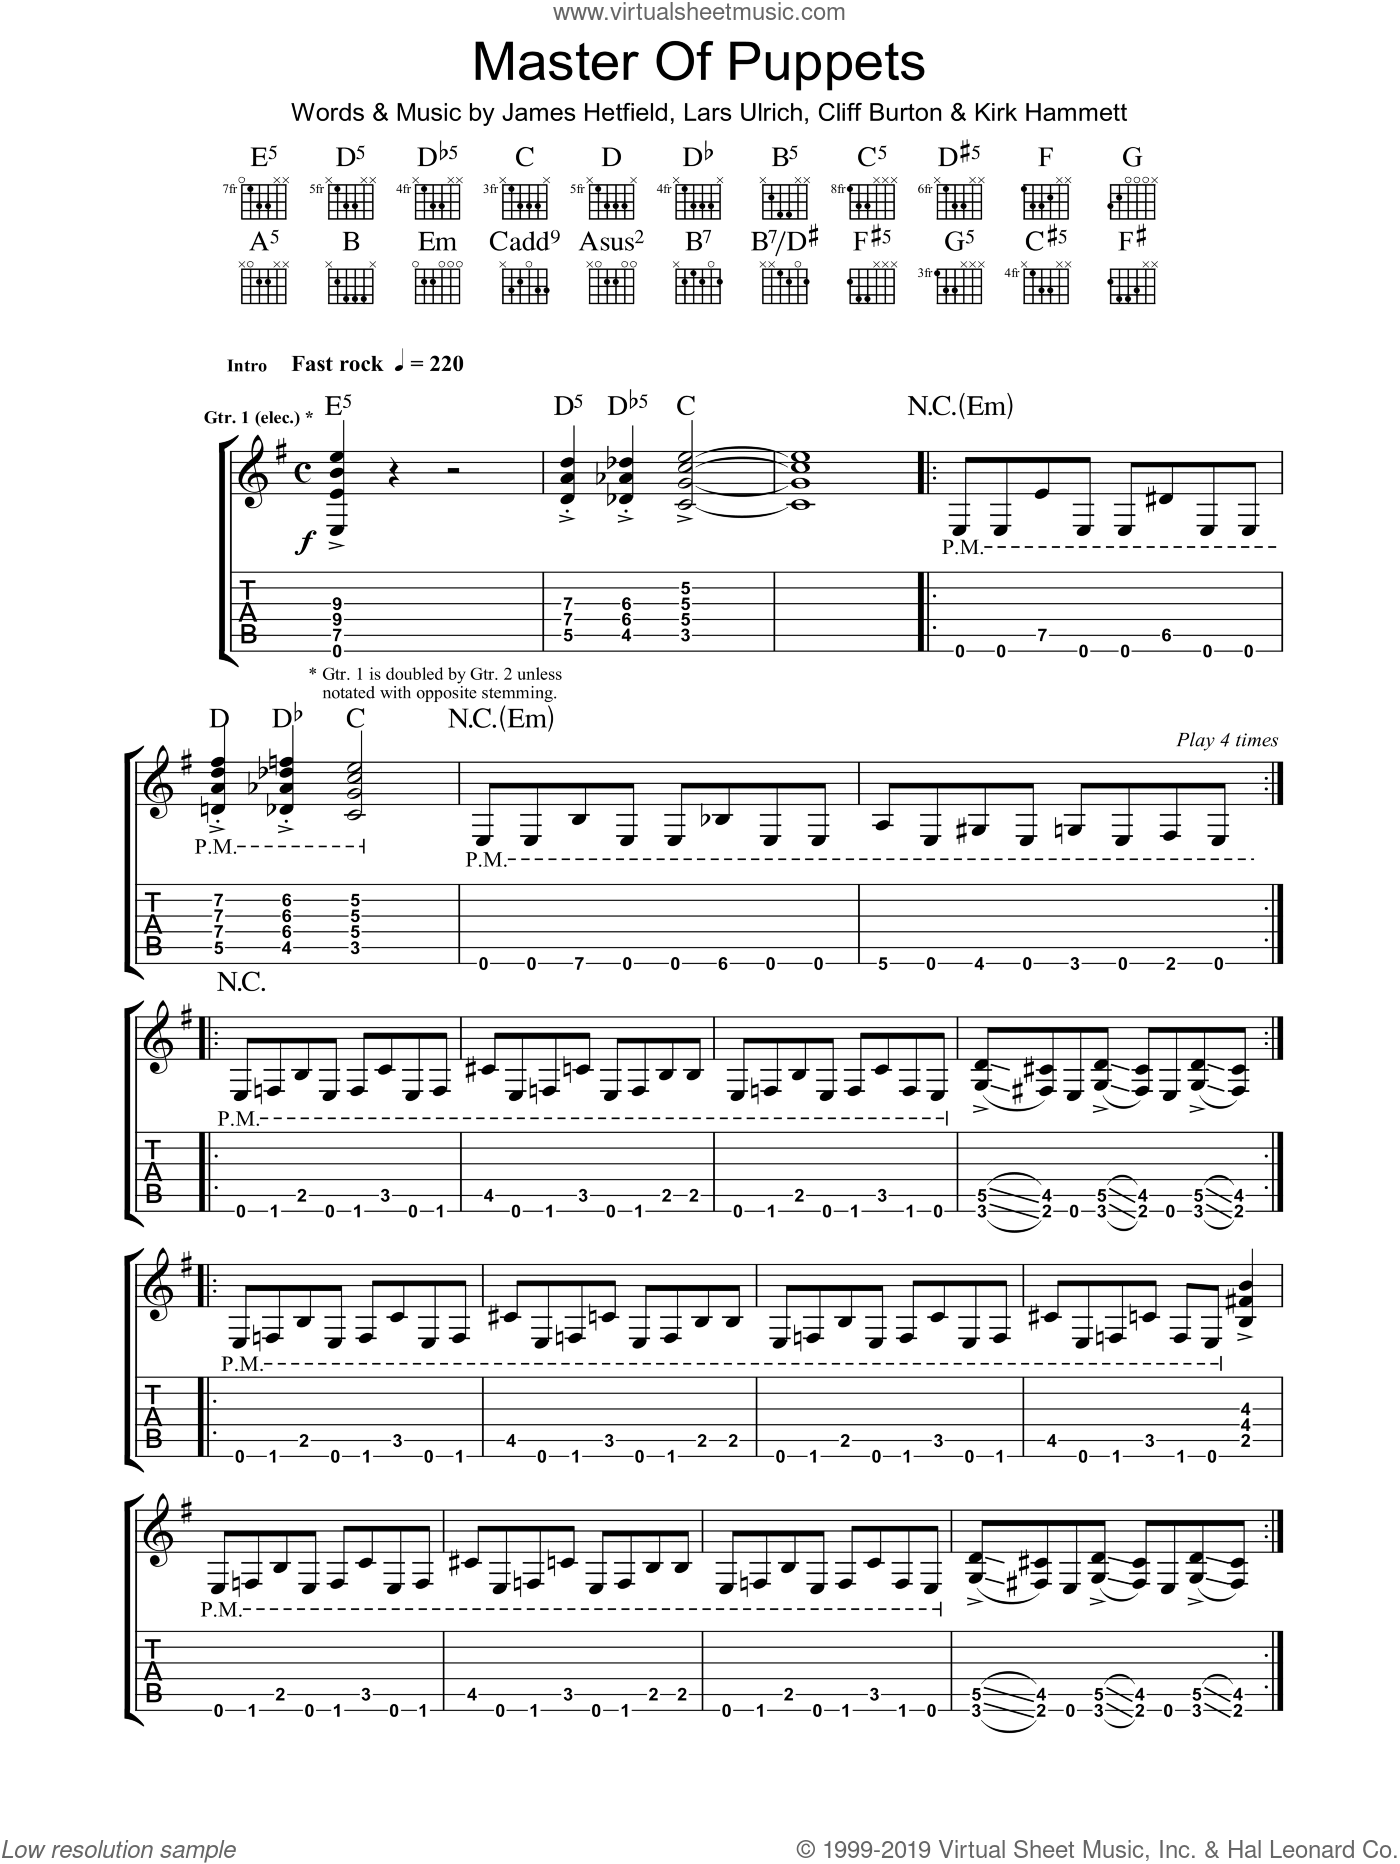 Master Of Puppets sheet music for guitar (tablature) by Lars Ulrich